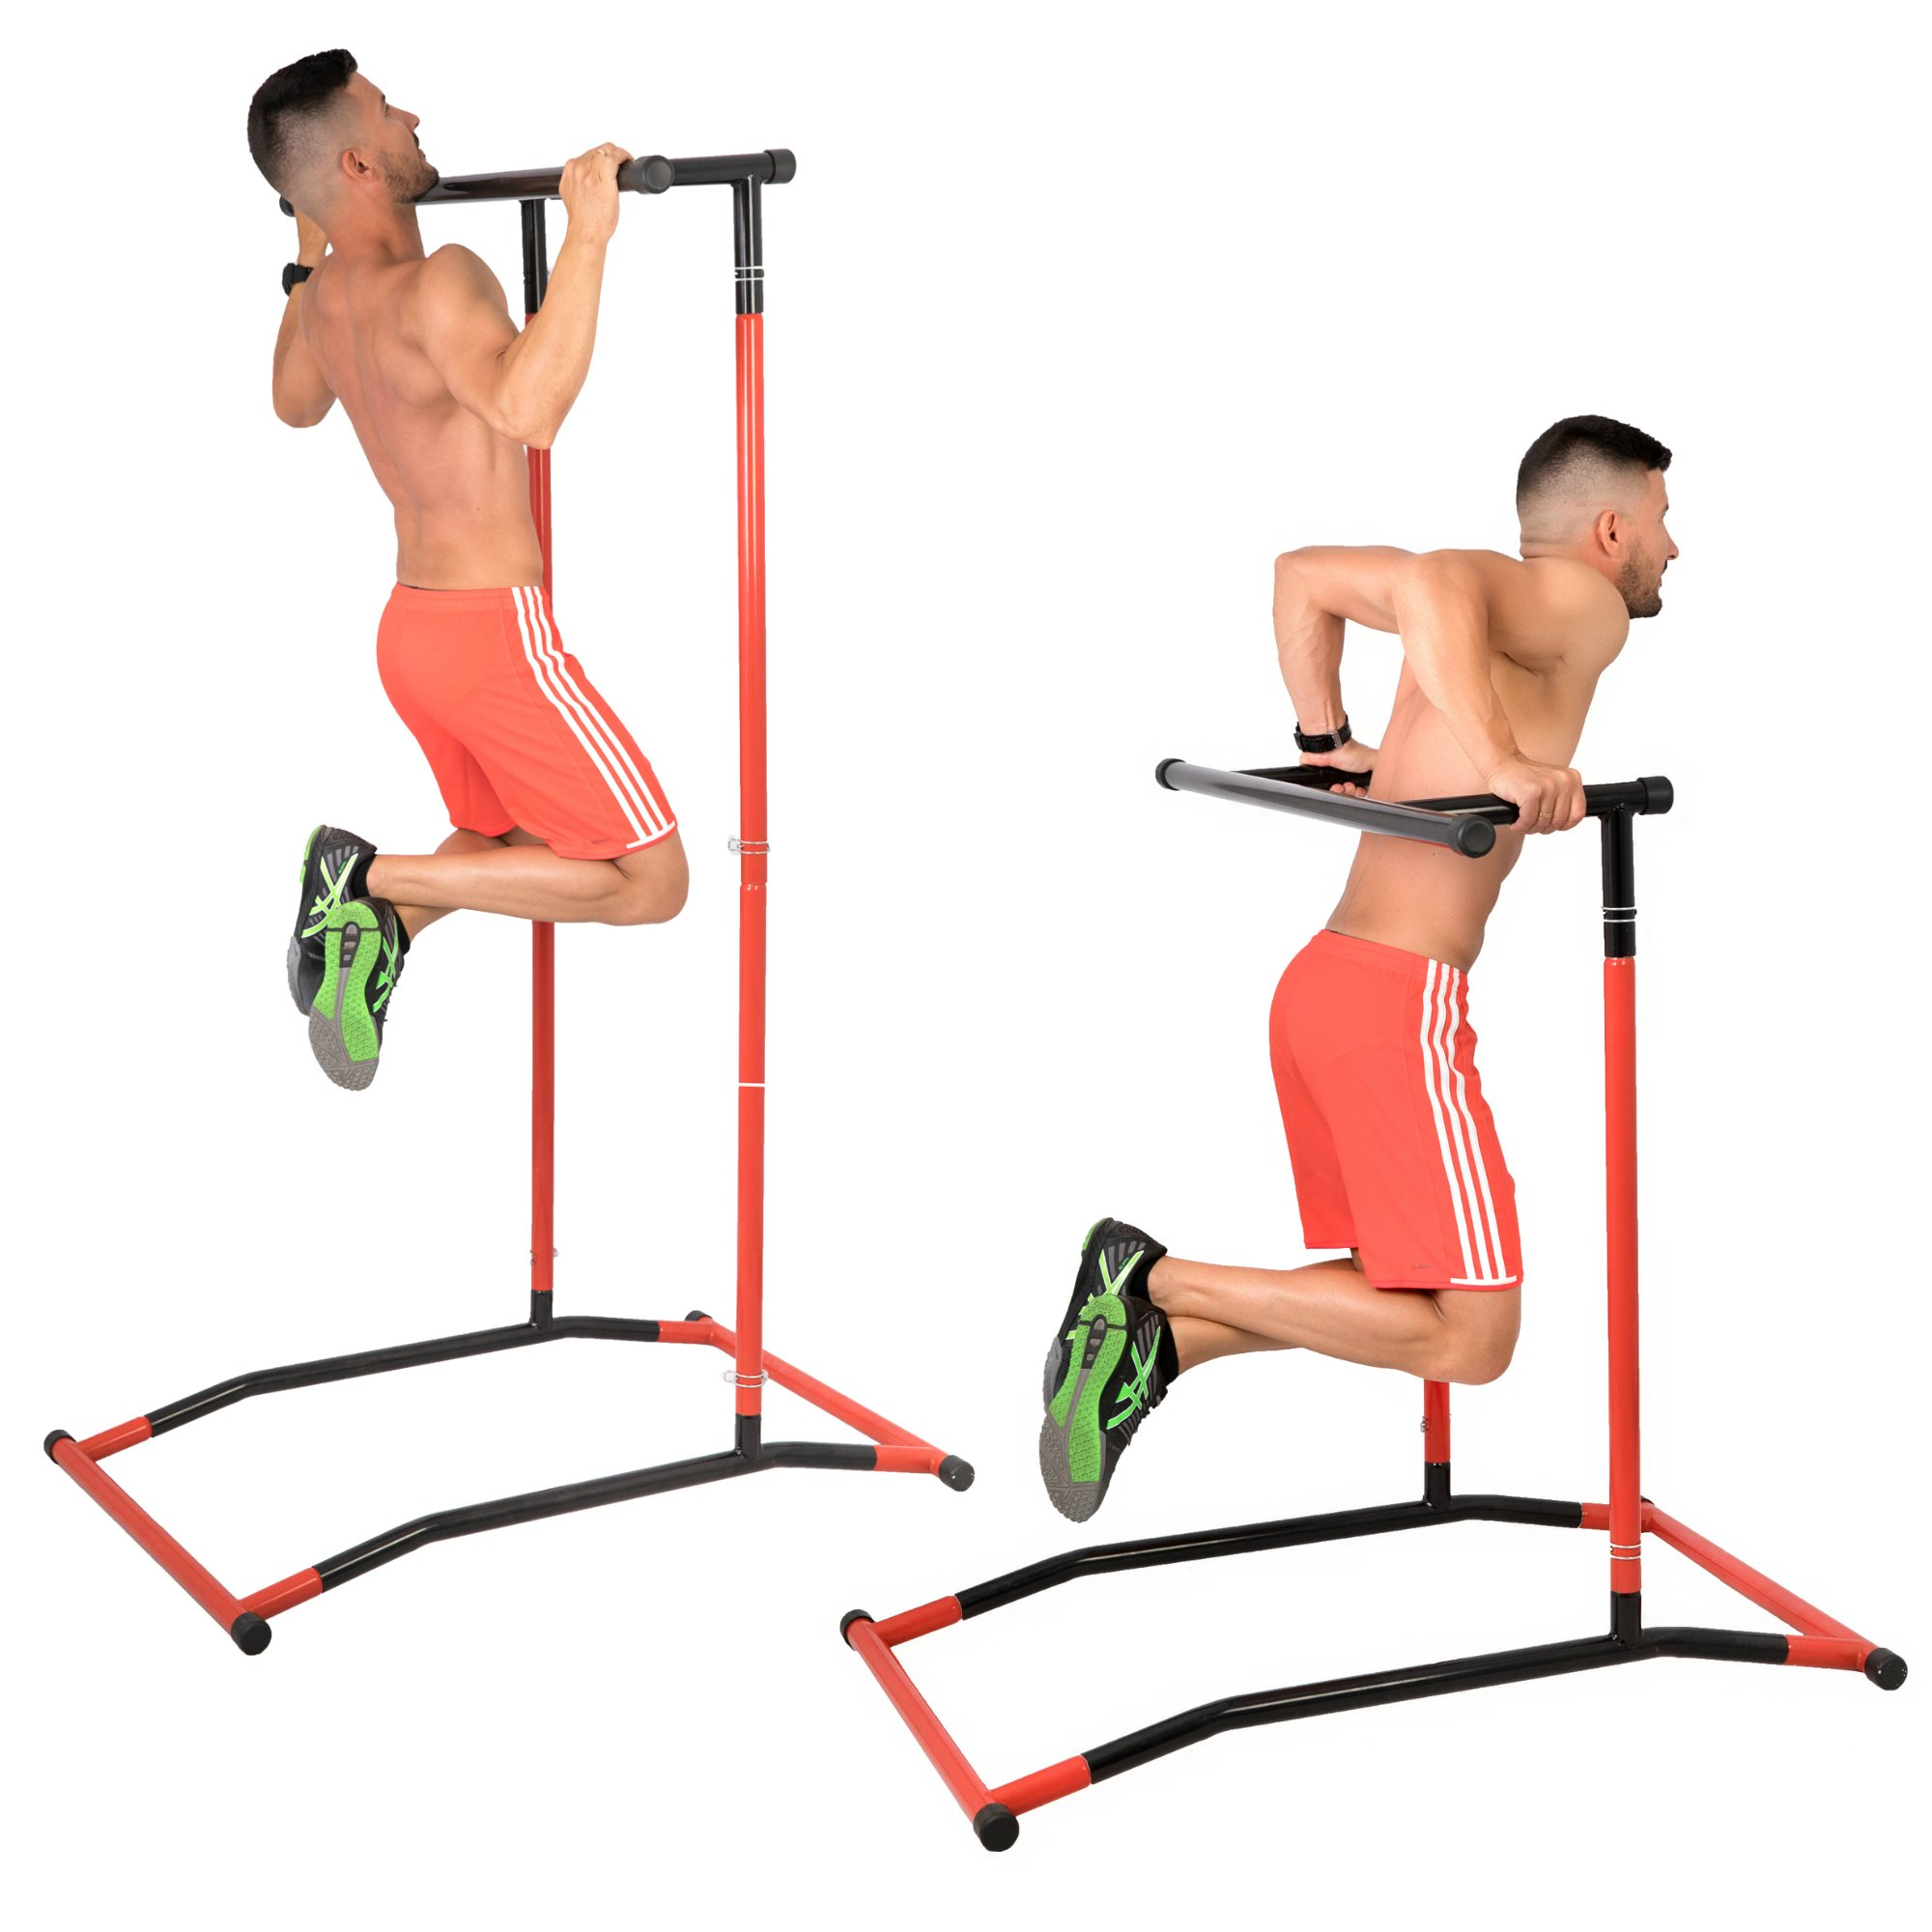 GoBeast Pull Up & Dip Station, Portable Steel Power Tower, Includes Carry Bag, Requires No Tools, Workout Inside or Out, Improve Core Stability With Body-weight workouts, Max User Weight 240lbs! by GoBeast